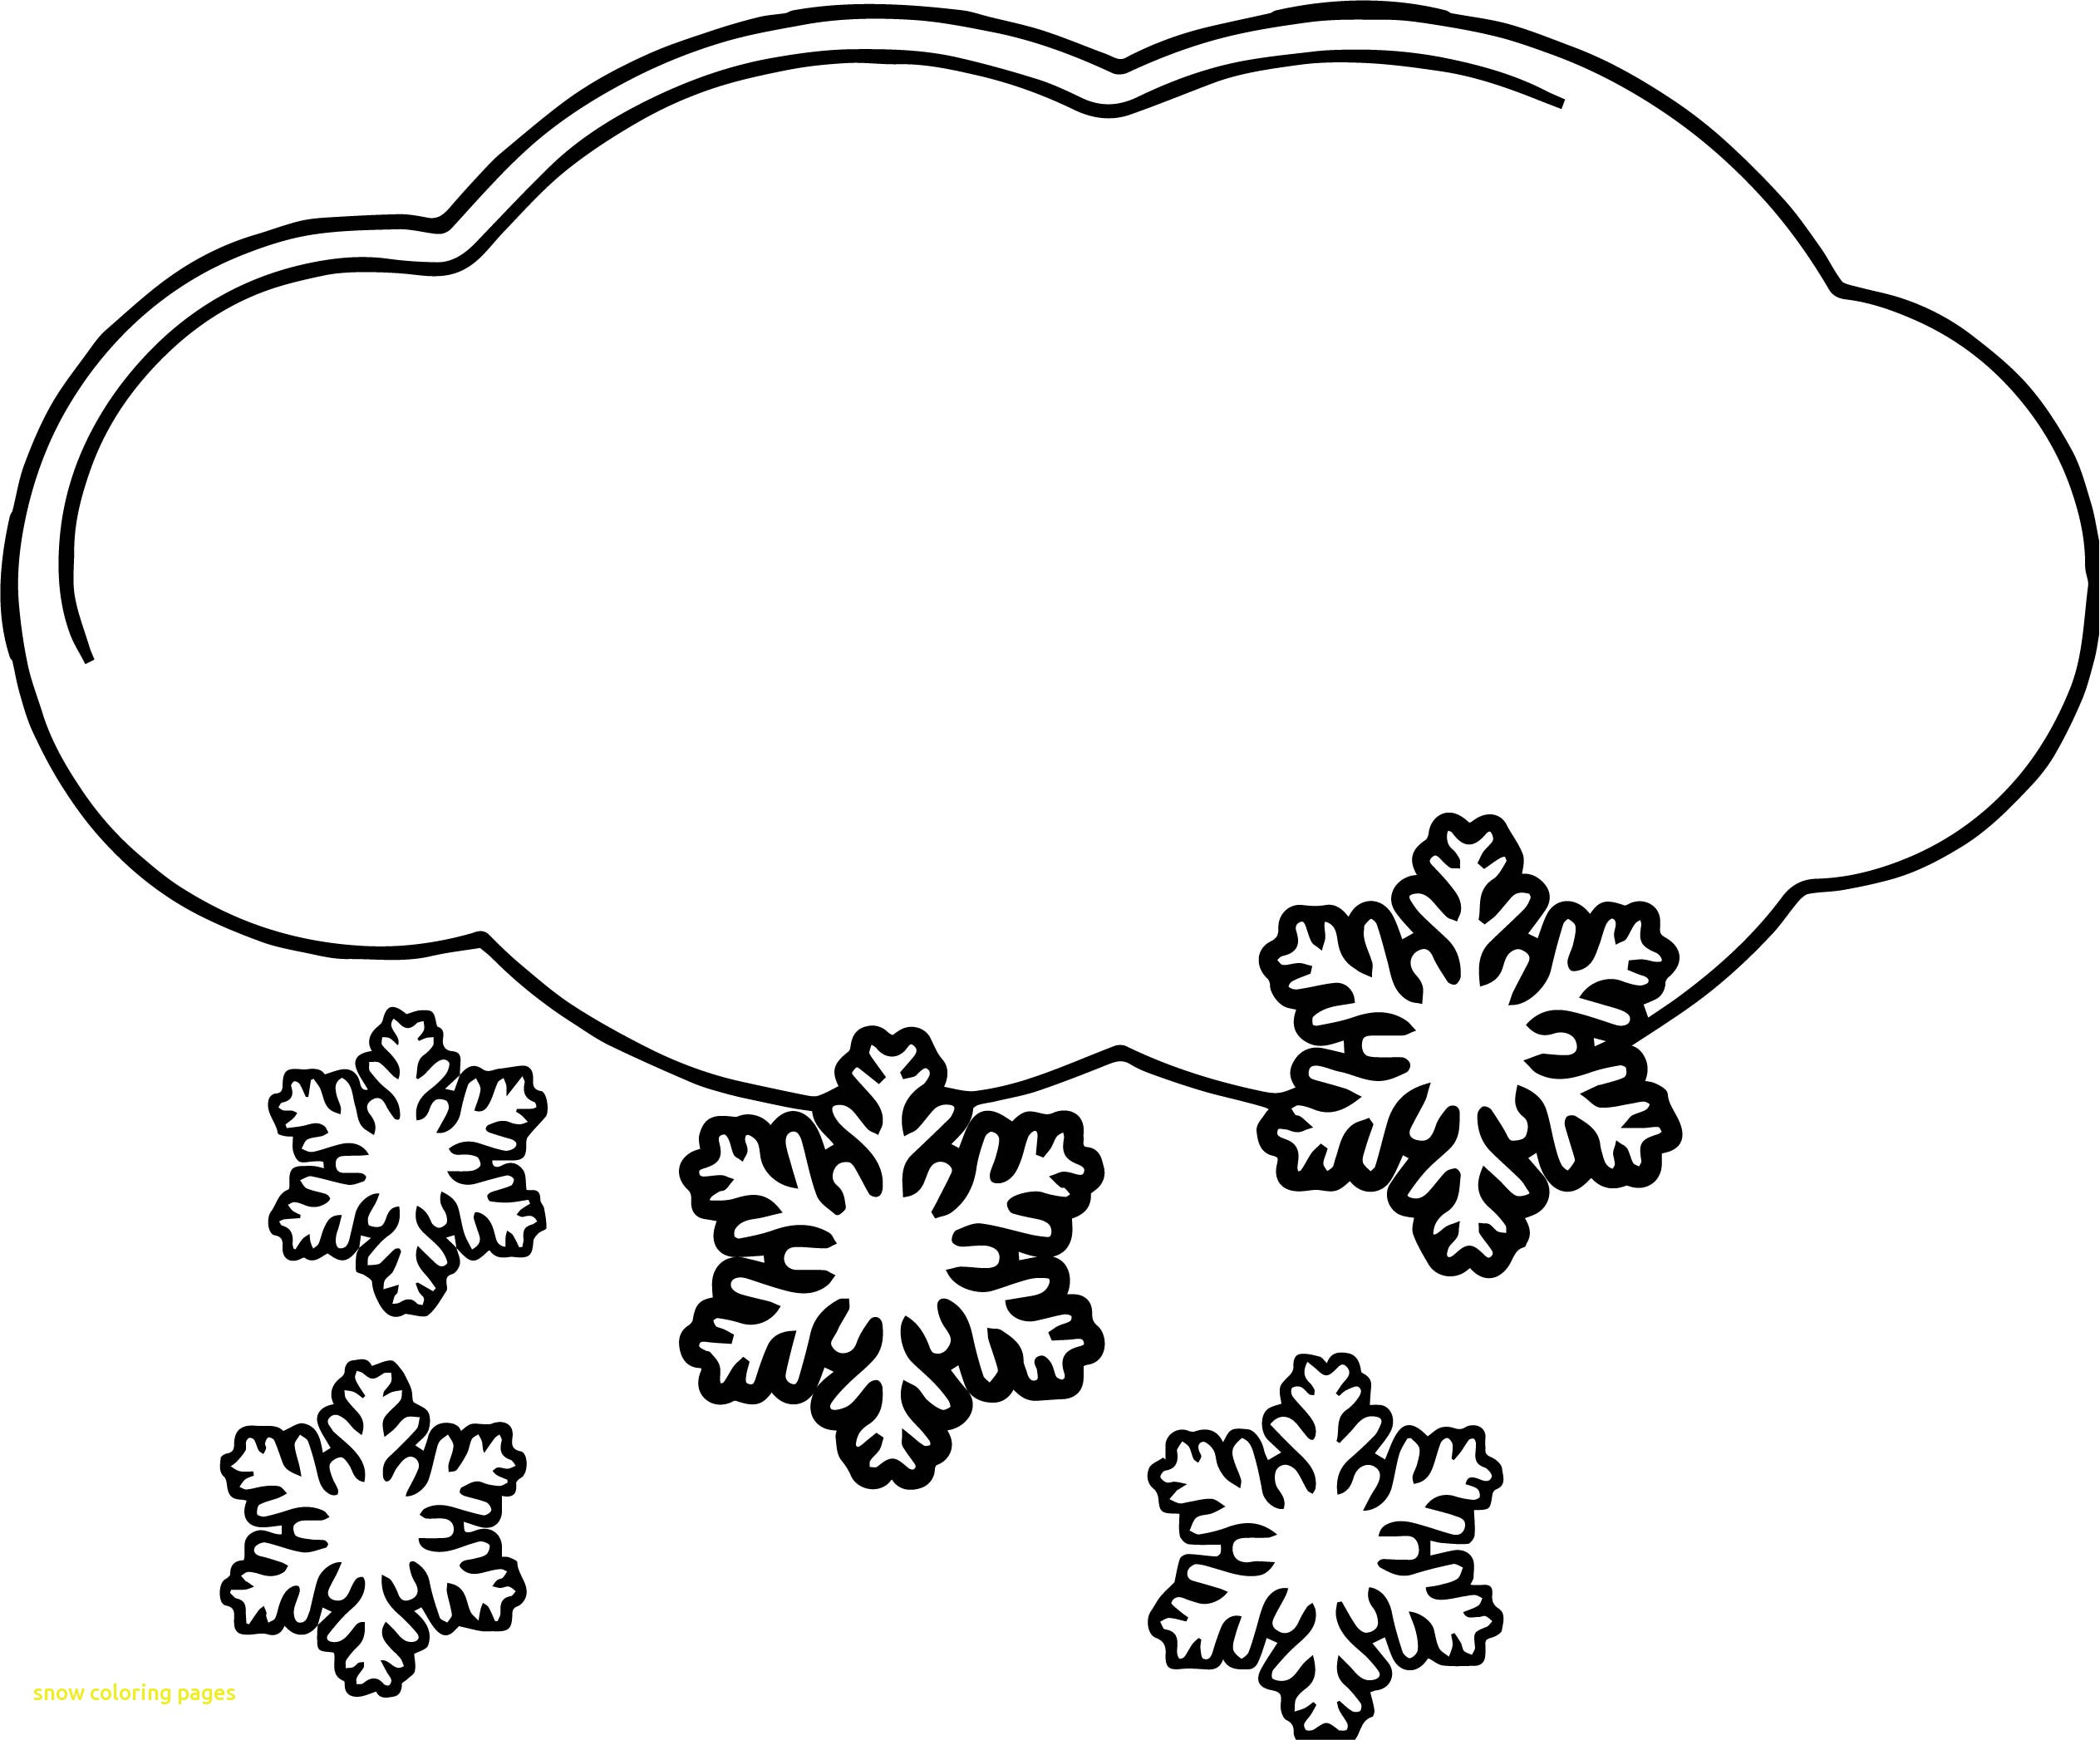 2527x2094 Snow Coloring Pages Winter With Free Ribsvigyapan Snowman Snow